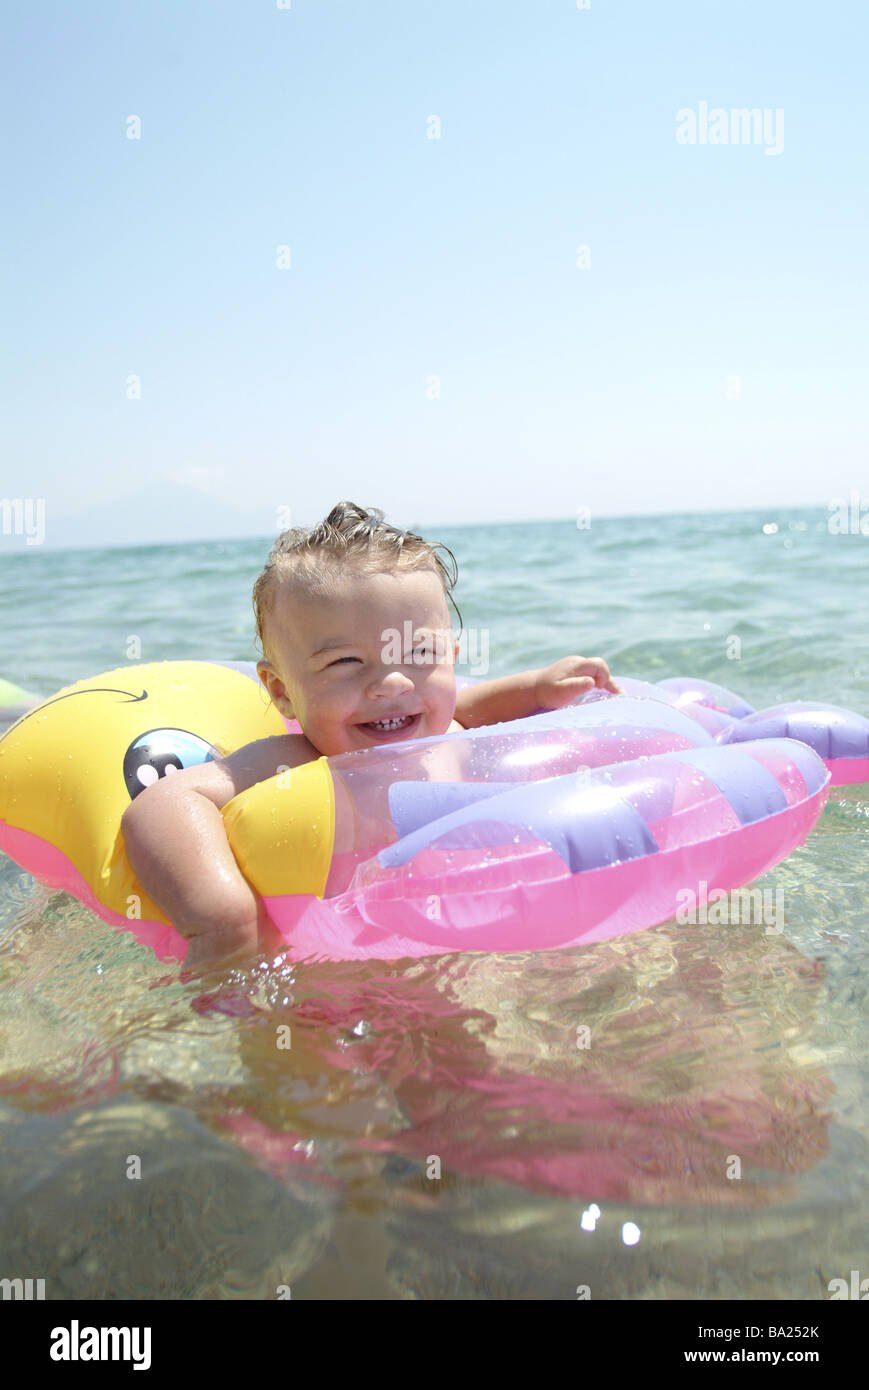 Girls smiles swimming-ring pink sea swims portrait people child-portrait child toddler 1-2 years childhood cheerfully - Stock Image